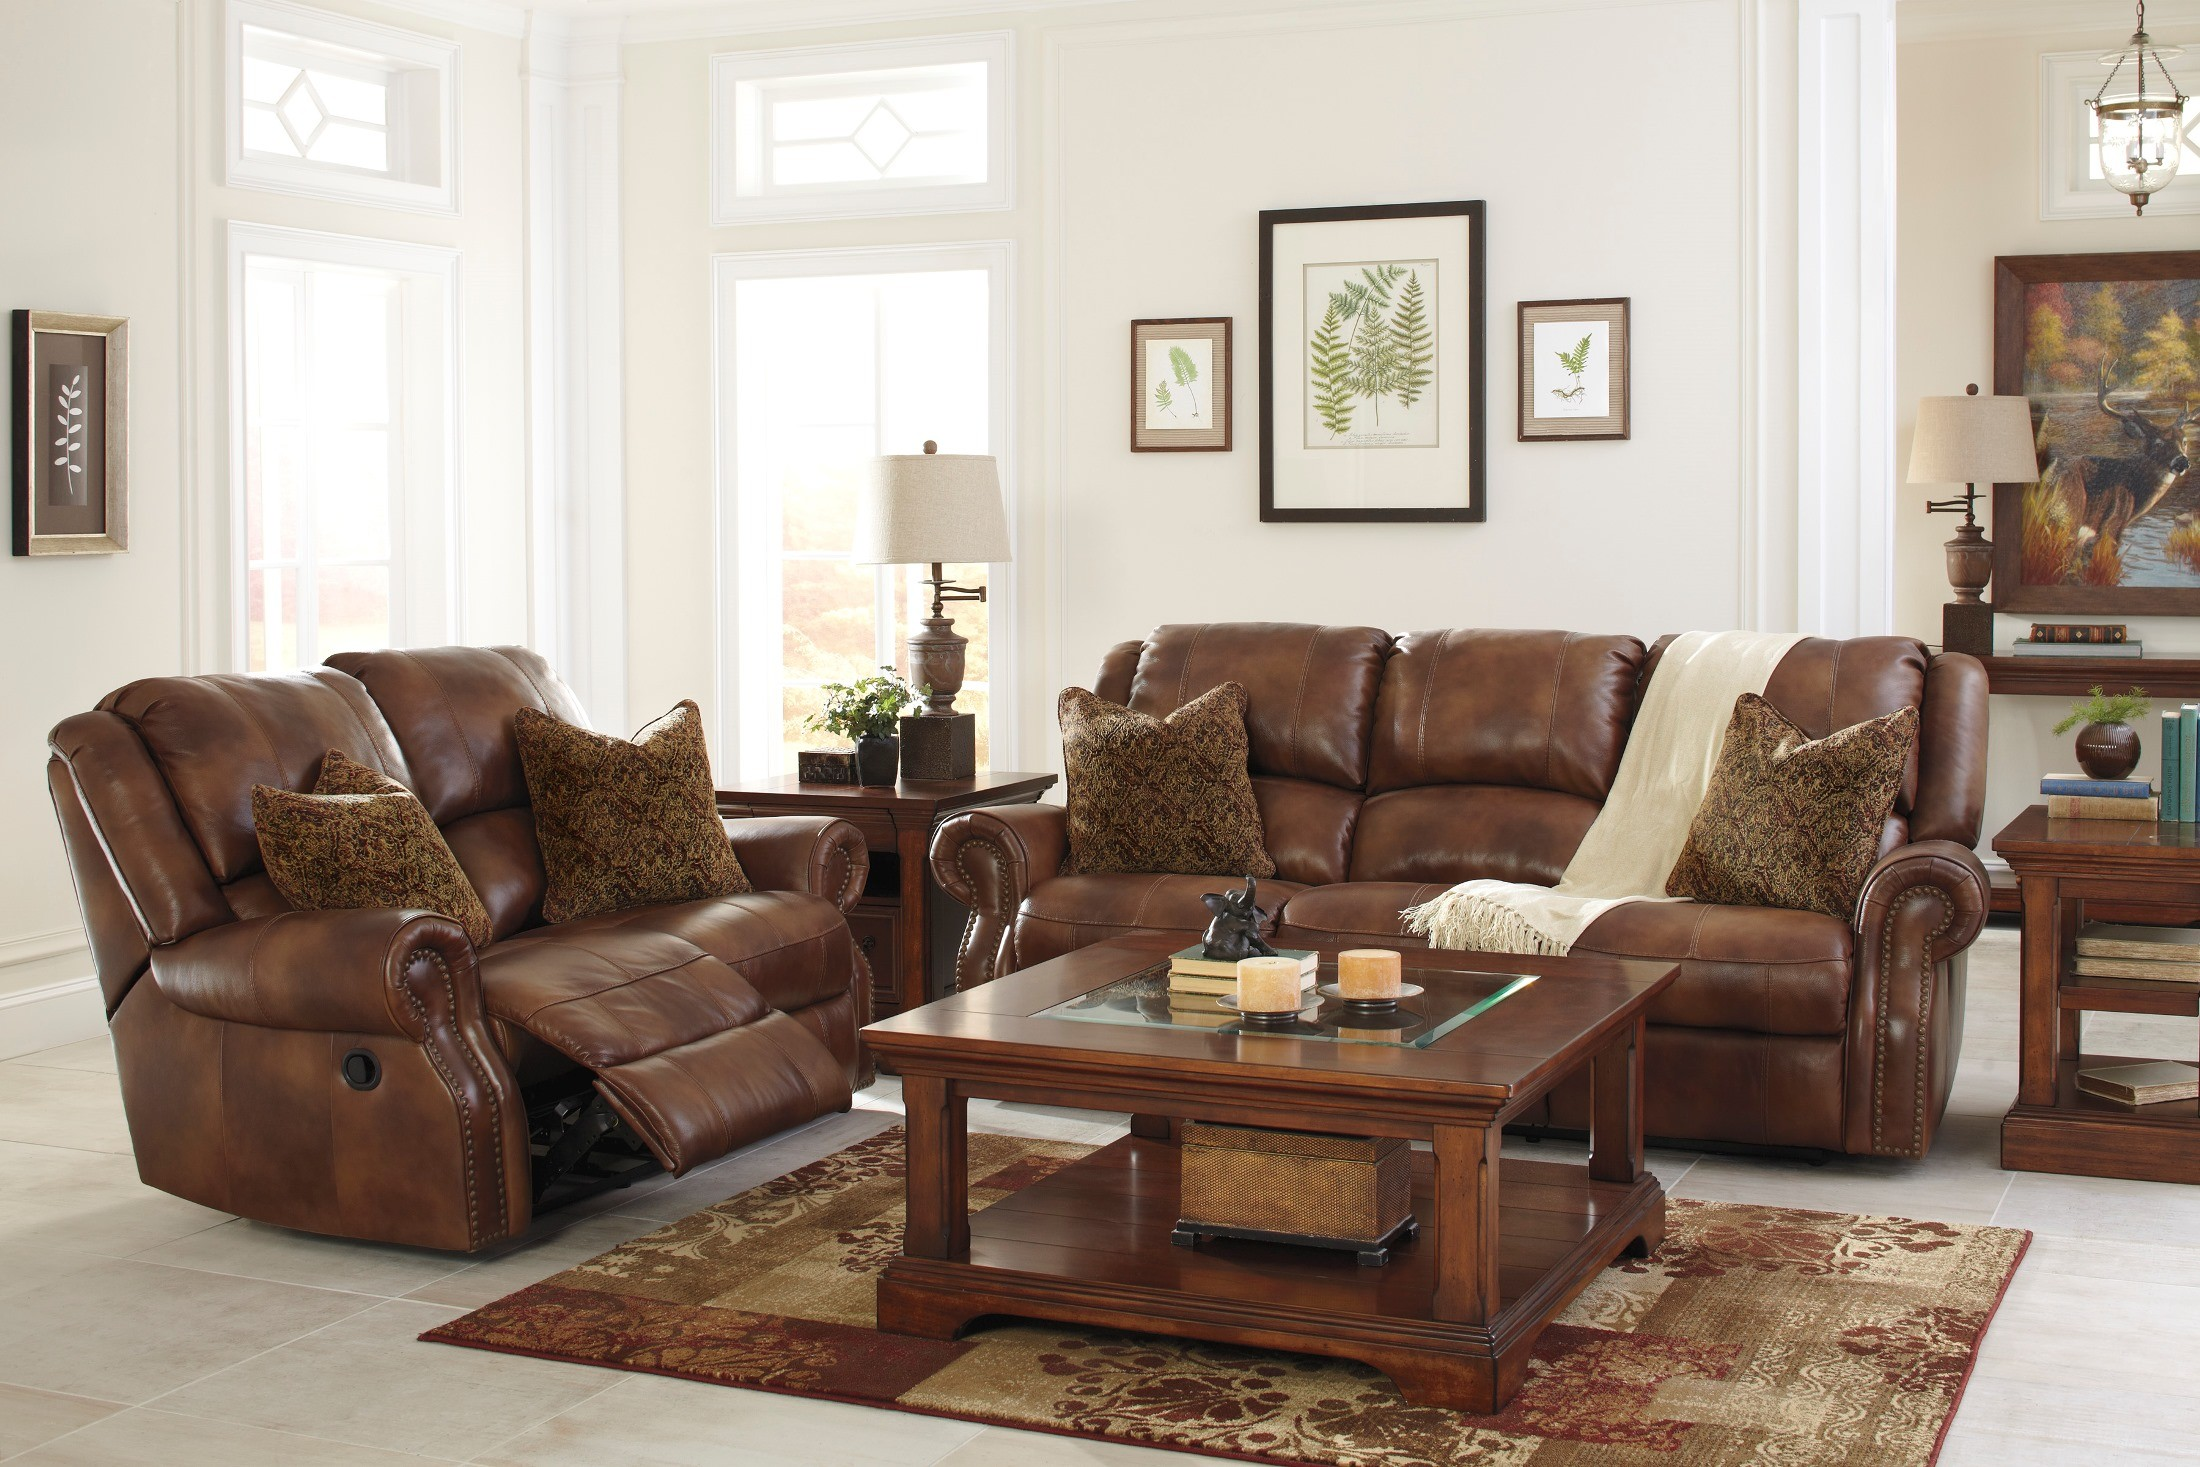 Walworth auburn power reclining living room set from Pics of living room sets